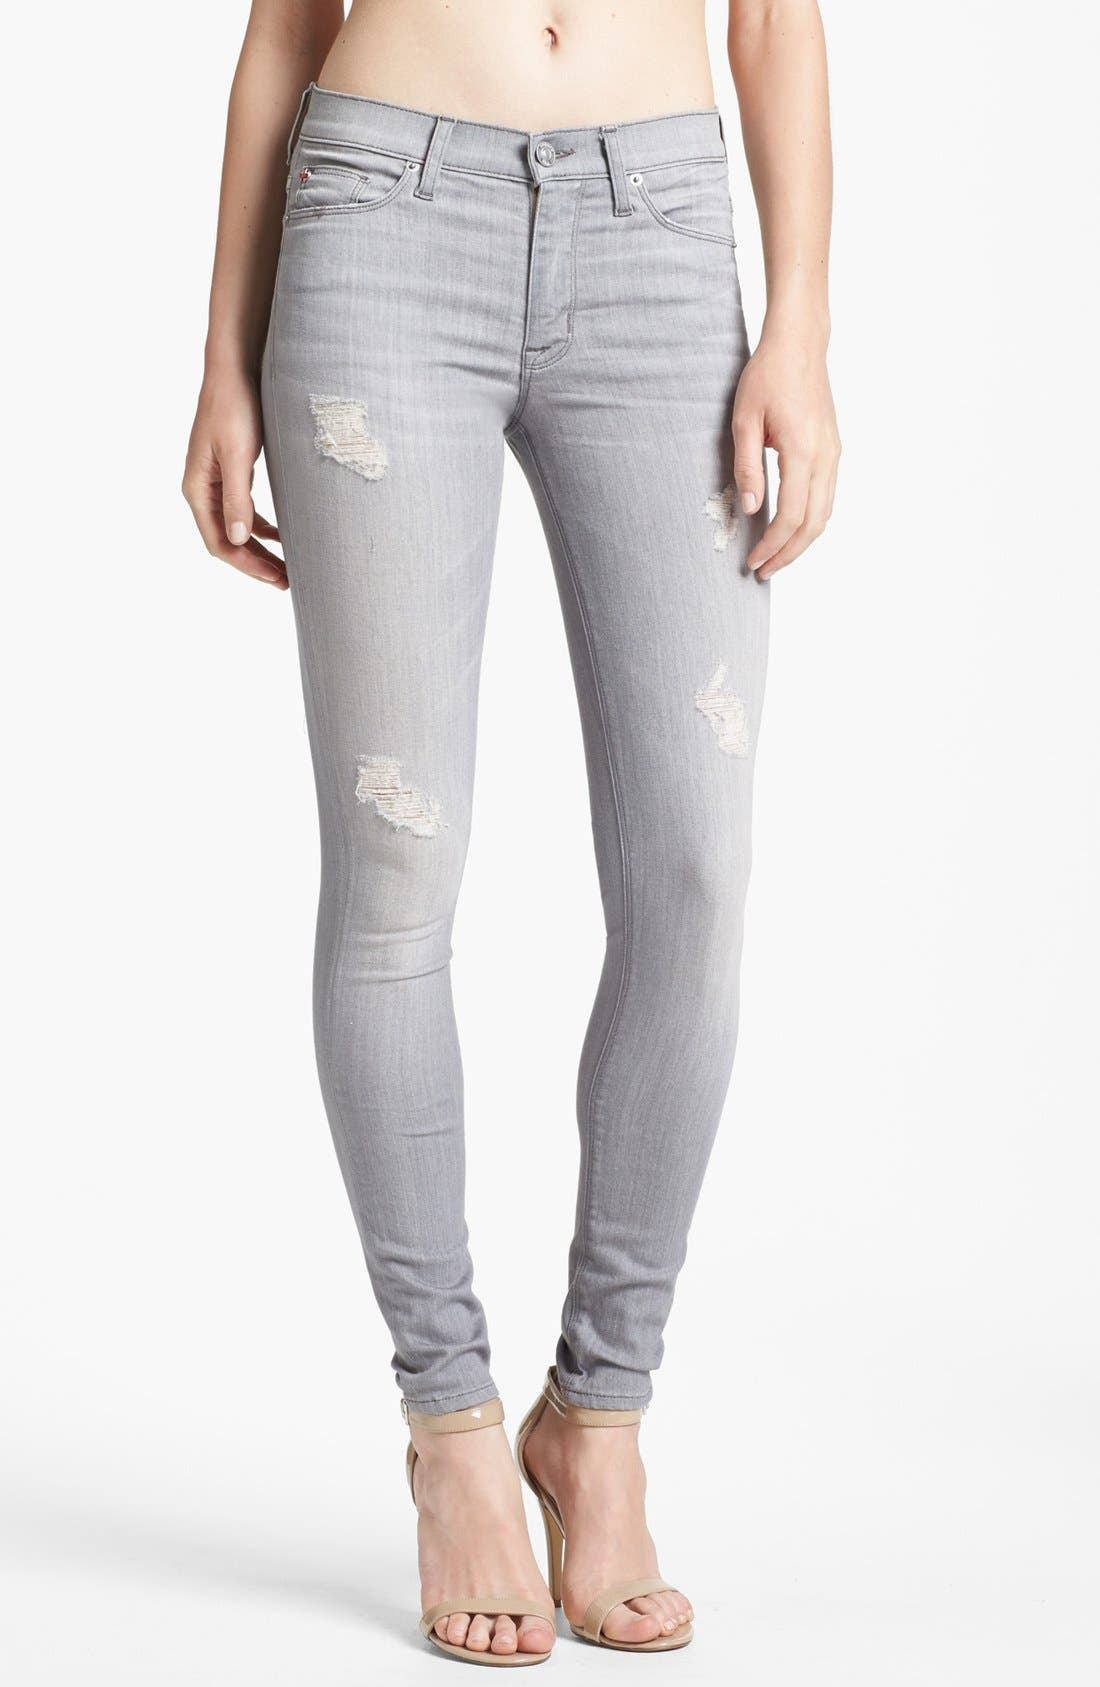 Alternate Image 1 Selected - Hudson Jeans 'Nico' Skinny Stretch Jeans (Fiji Grey)